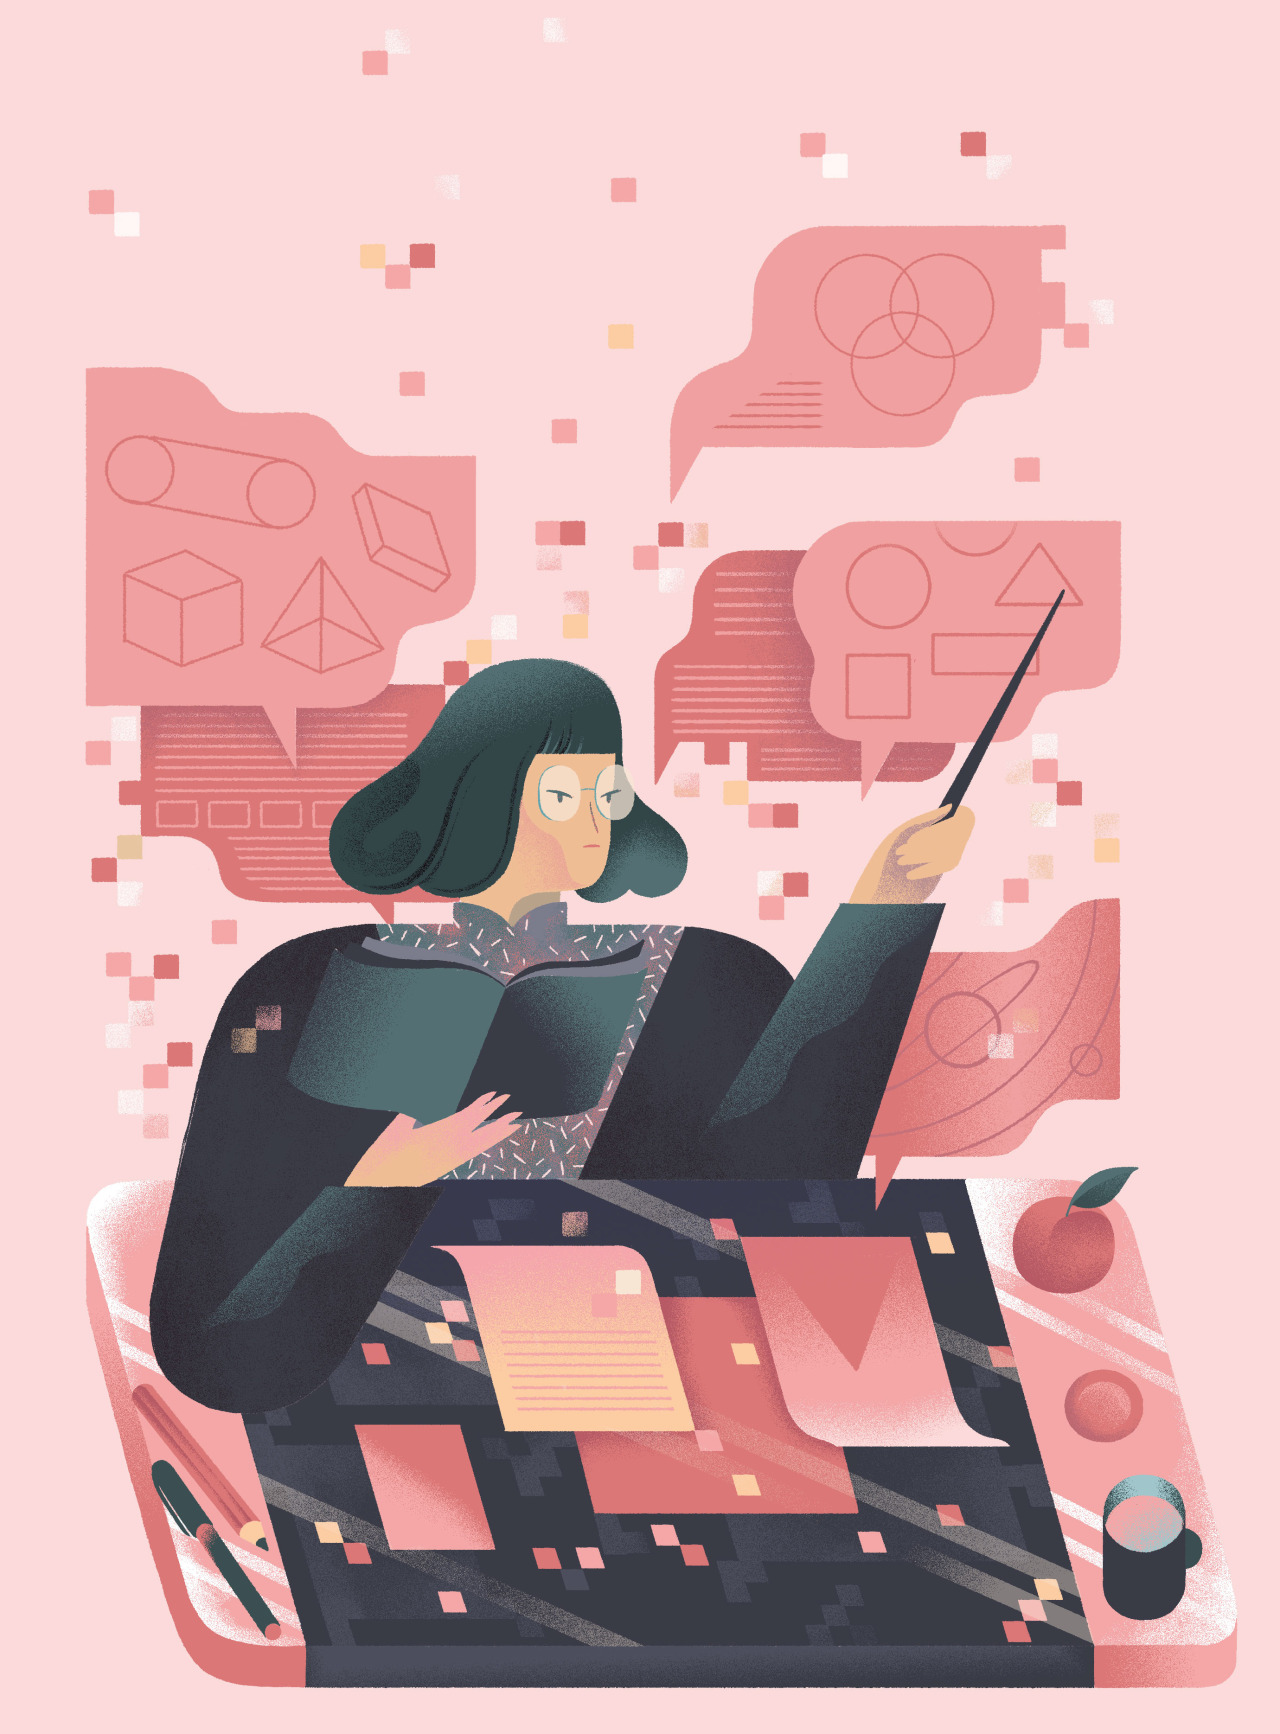 "<b><a href=""https://www.technologyreview.com/s/600943/wechat-is-extending-chinas-school-days-well-into-the-night/"">WeChat Is Extending China's School Days Well into the Night</a></b> <br> Illustration by Marina Muun"